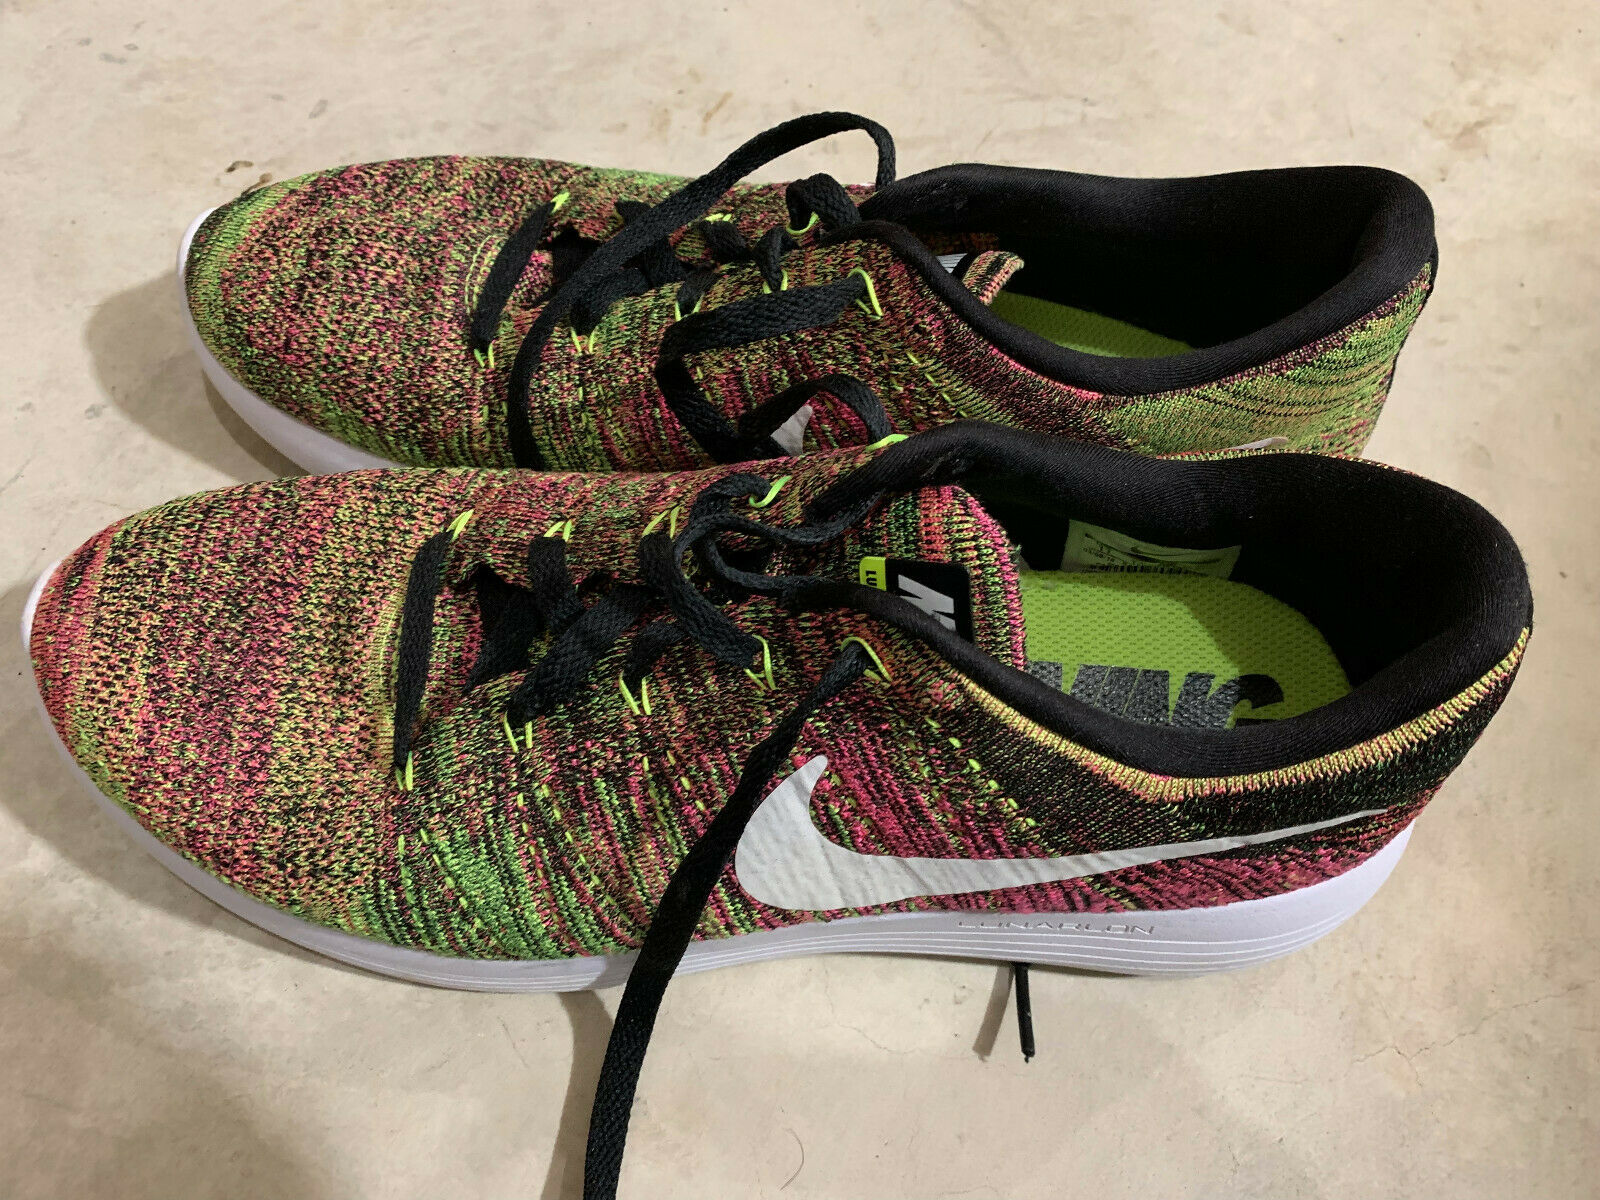 Nike Lunar Epic Low Flyknit 'Unlimited' Sneakers shoes size 11